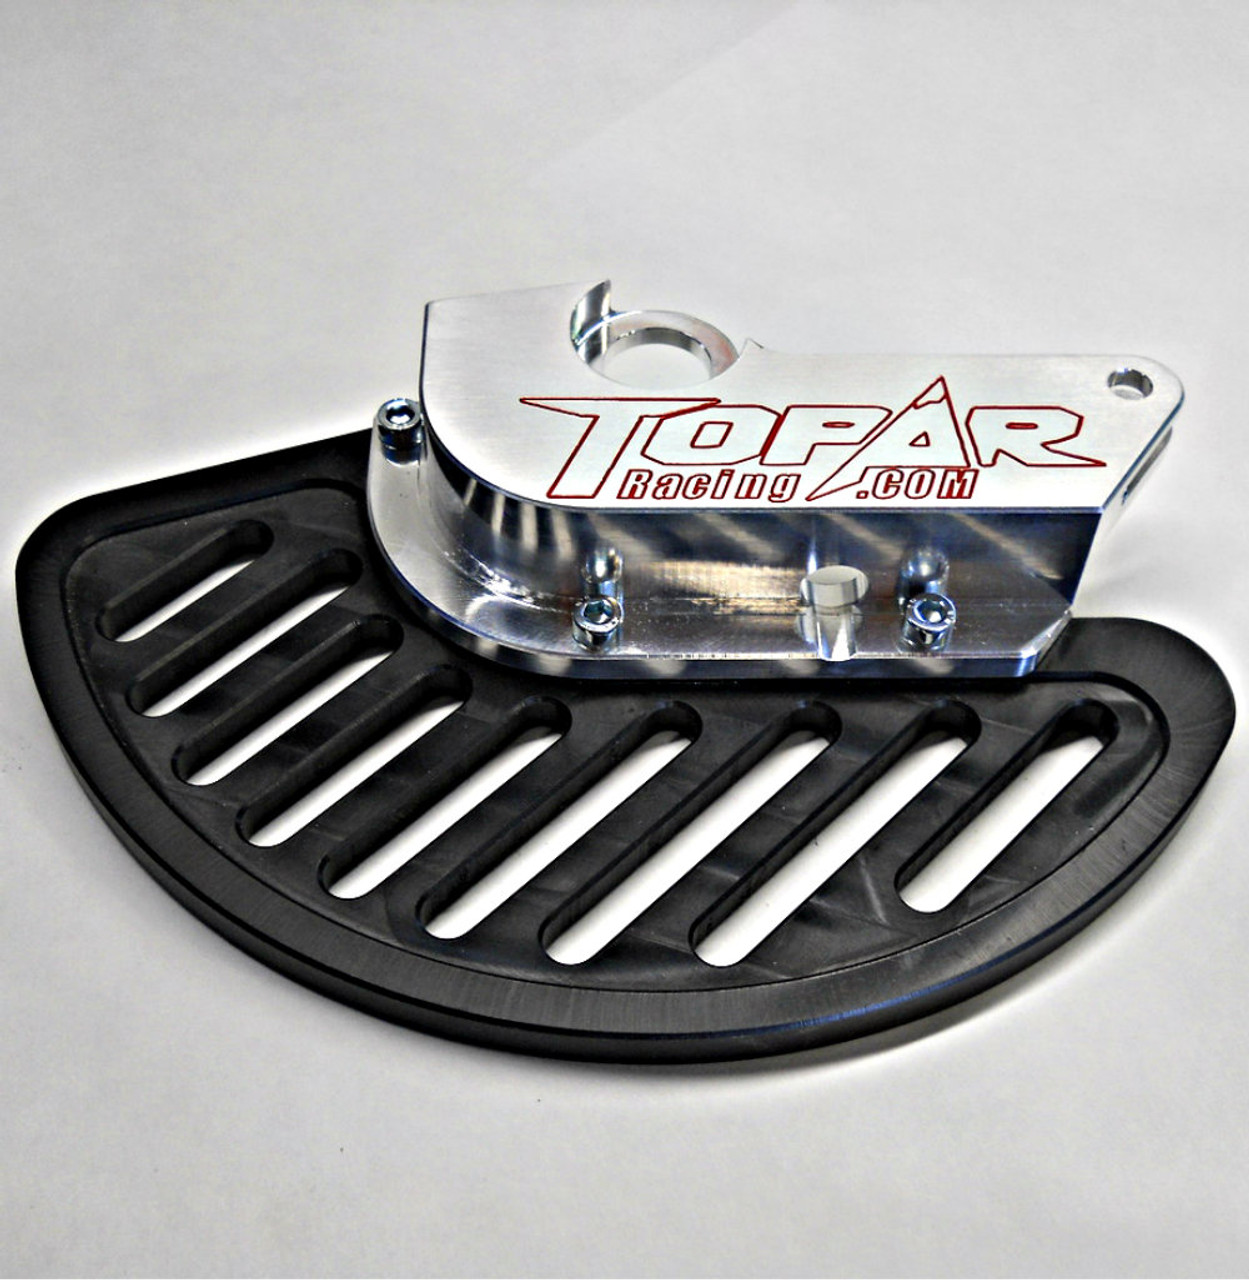 Topar Racing Front Brake Rotor Disc Guard for 2018-2020 BETA - All Enduro, 2T, 4T, RR, RR-S and RS with ZF FORKS ONLY  (Guard Shown without Optional Caliper Guard and UHMW Fin)